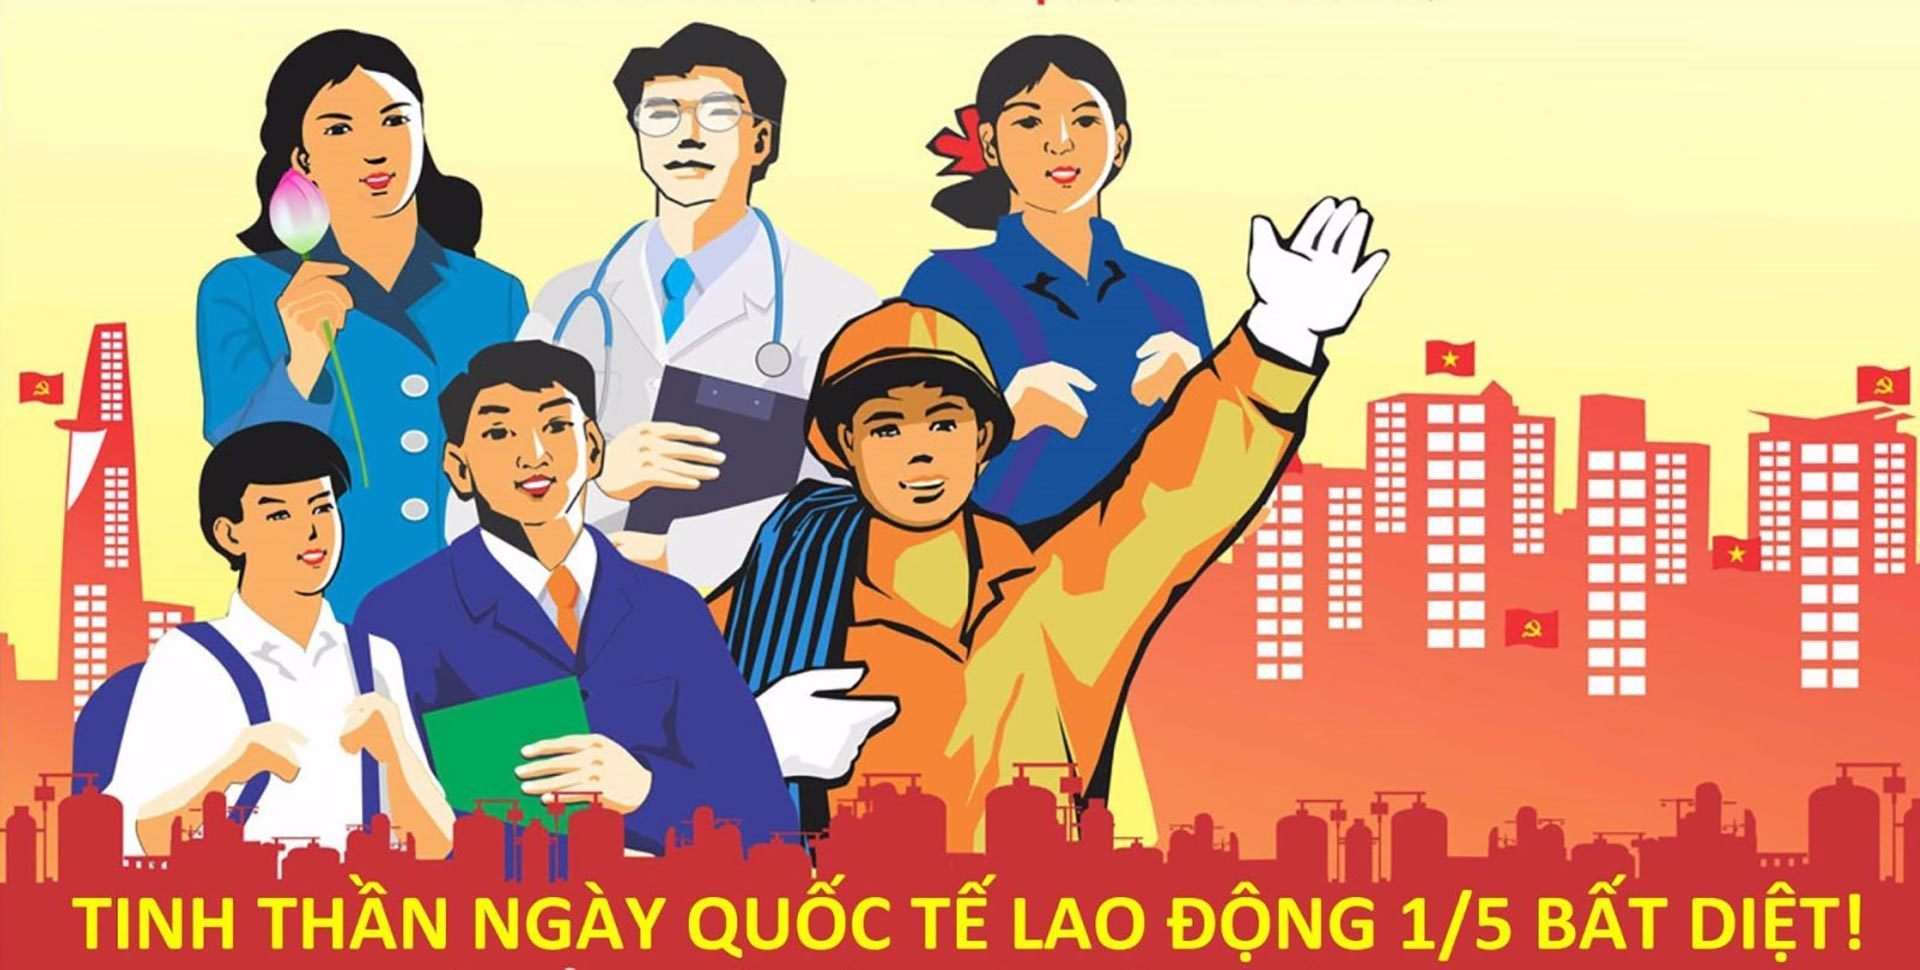 Vietnamese people has one day off on Labor Day on 1st May